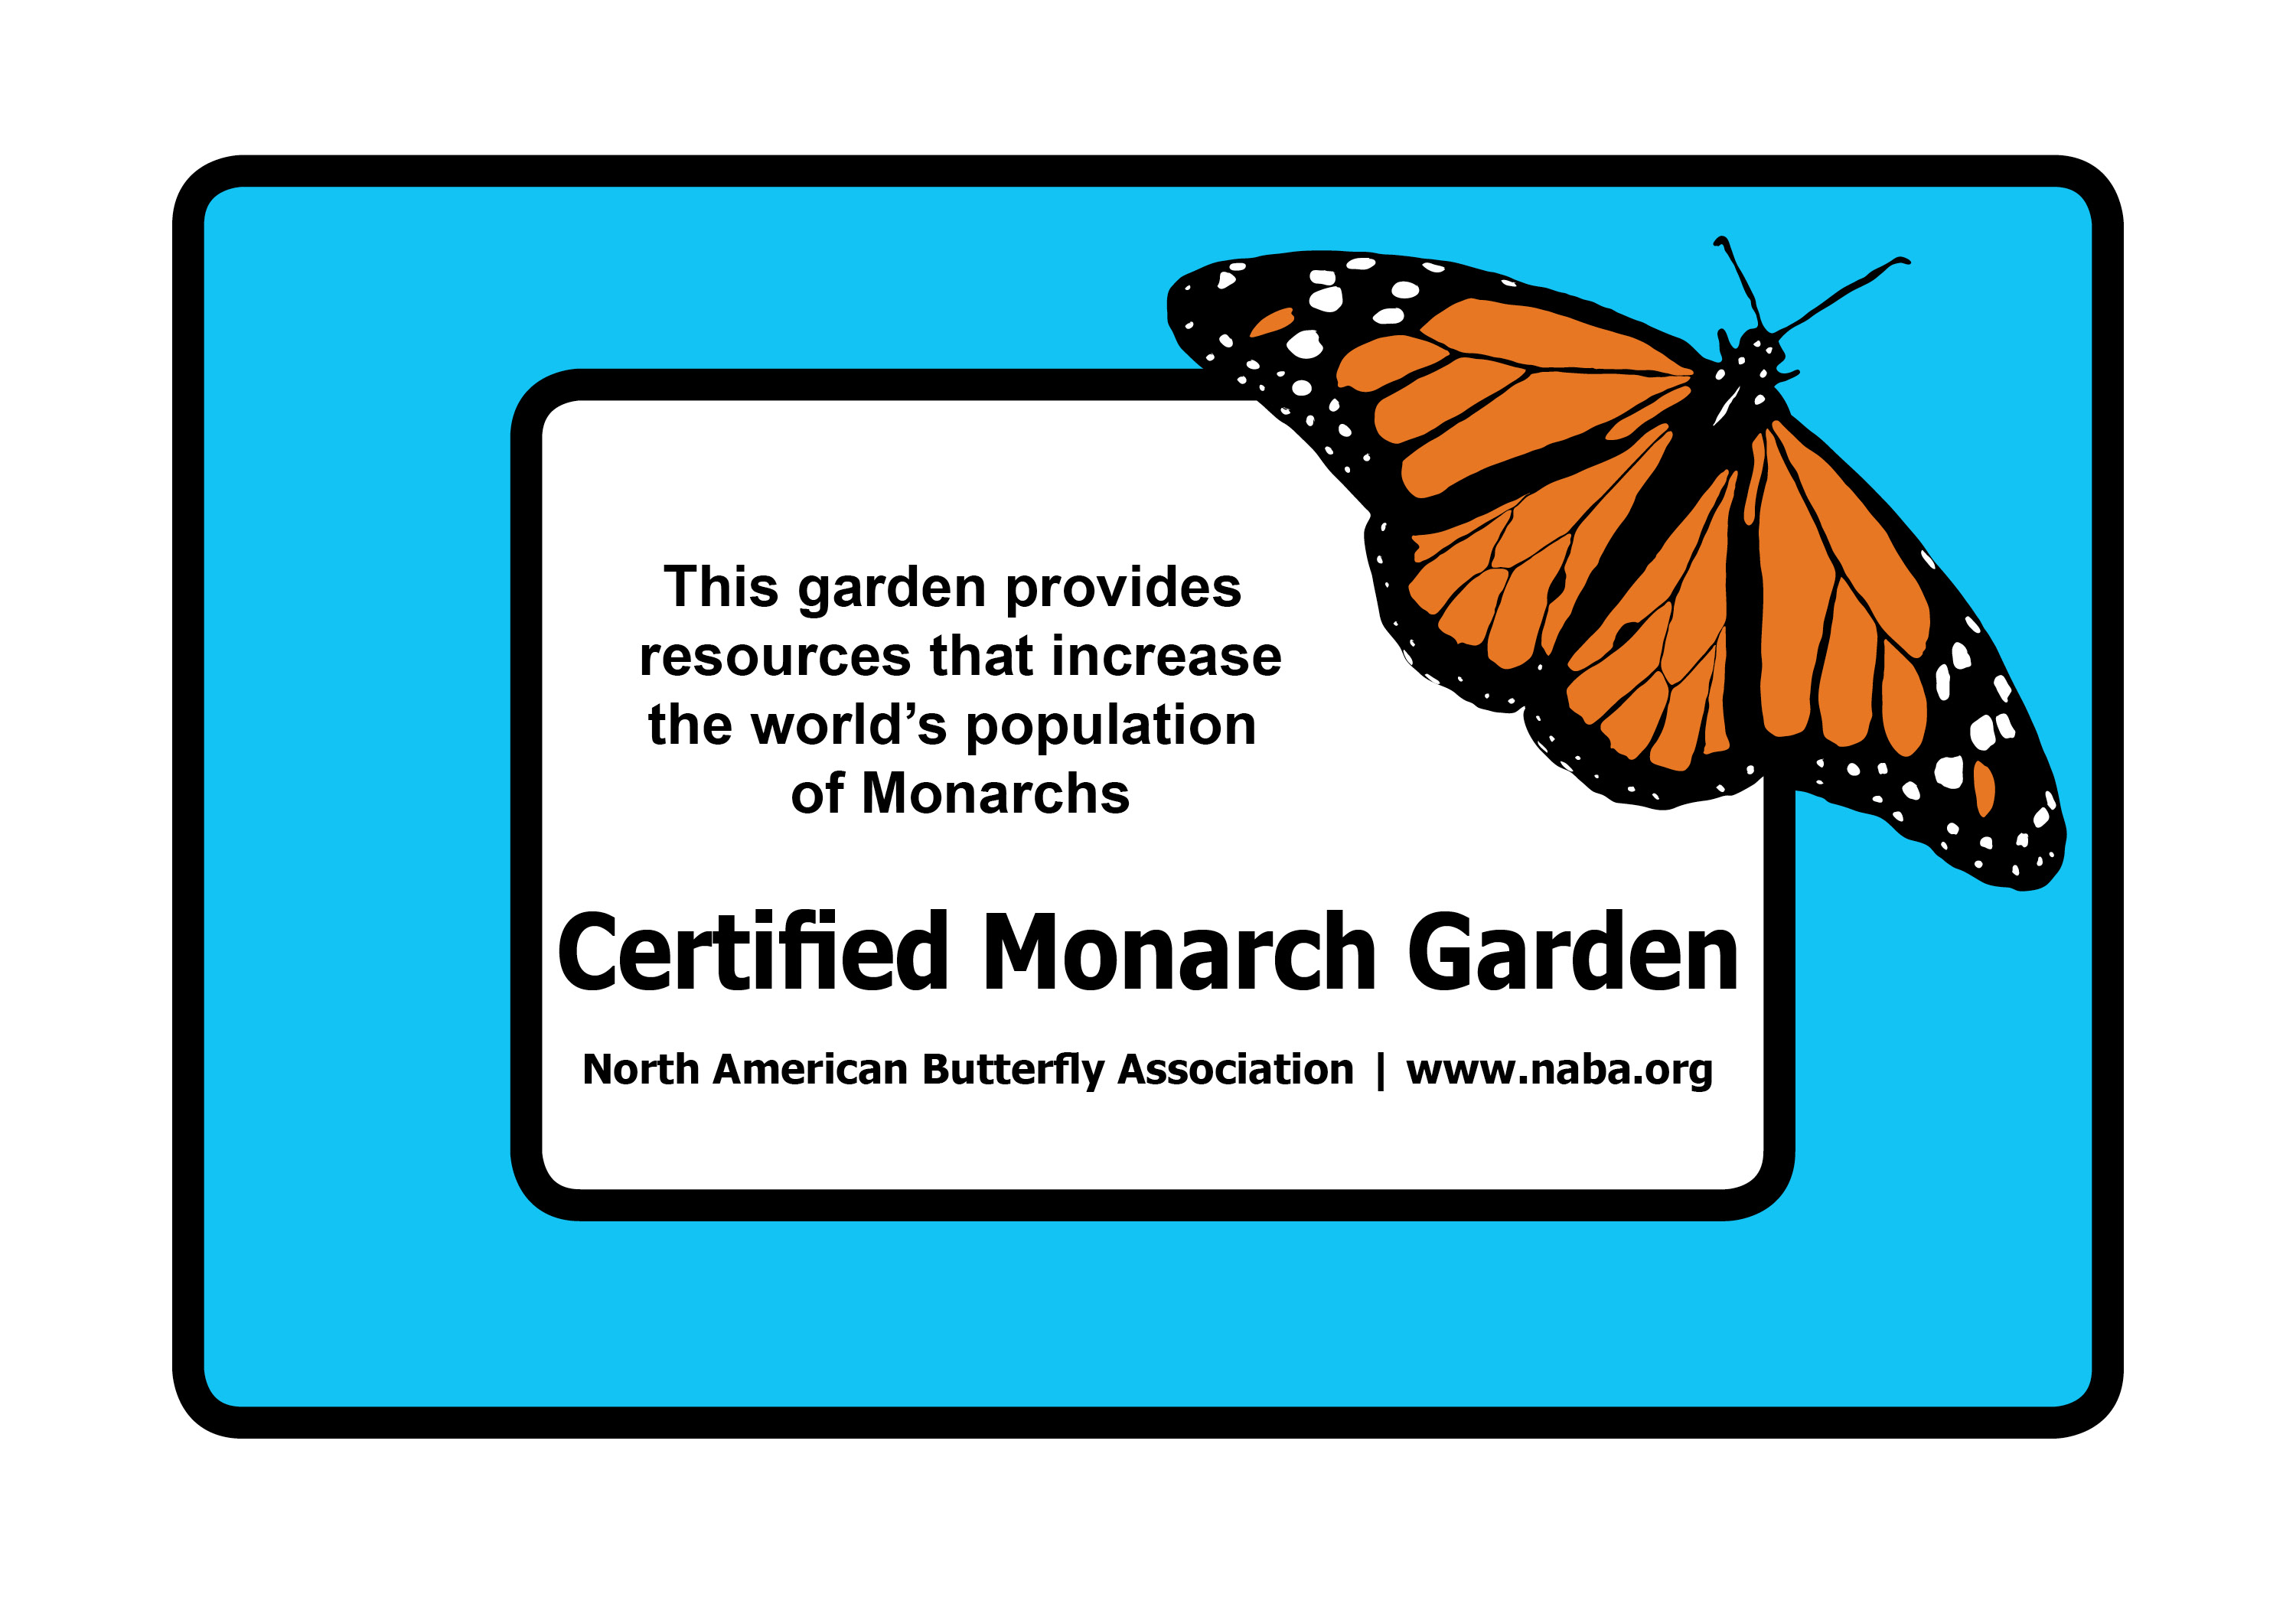 Attrayant NABA Certified Butterfly Gardeners May Purchase An Outdoor, Weatherproof  Certification Sign With A Monarch Image